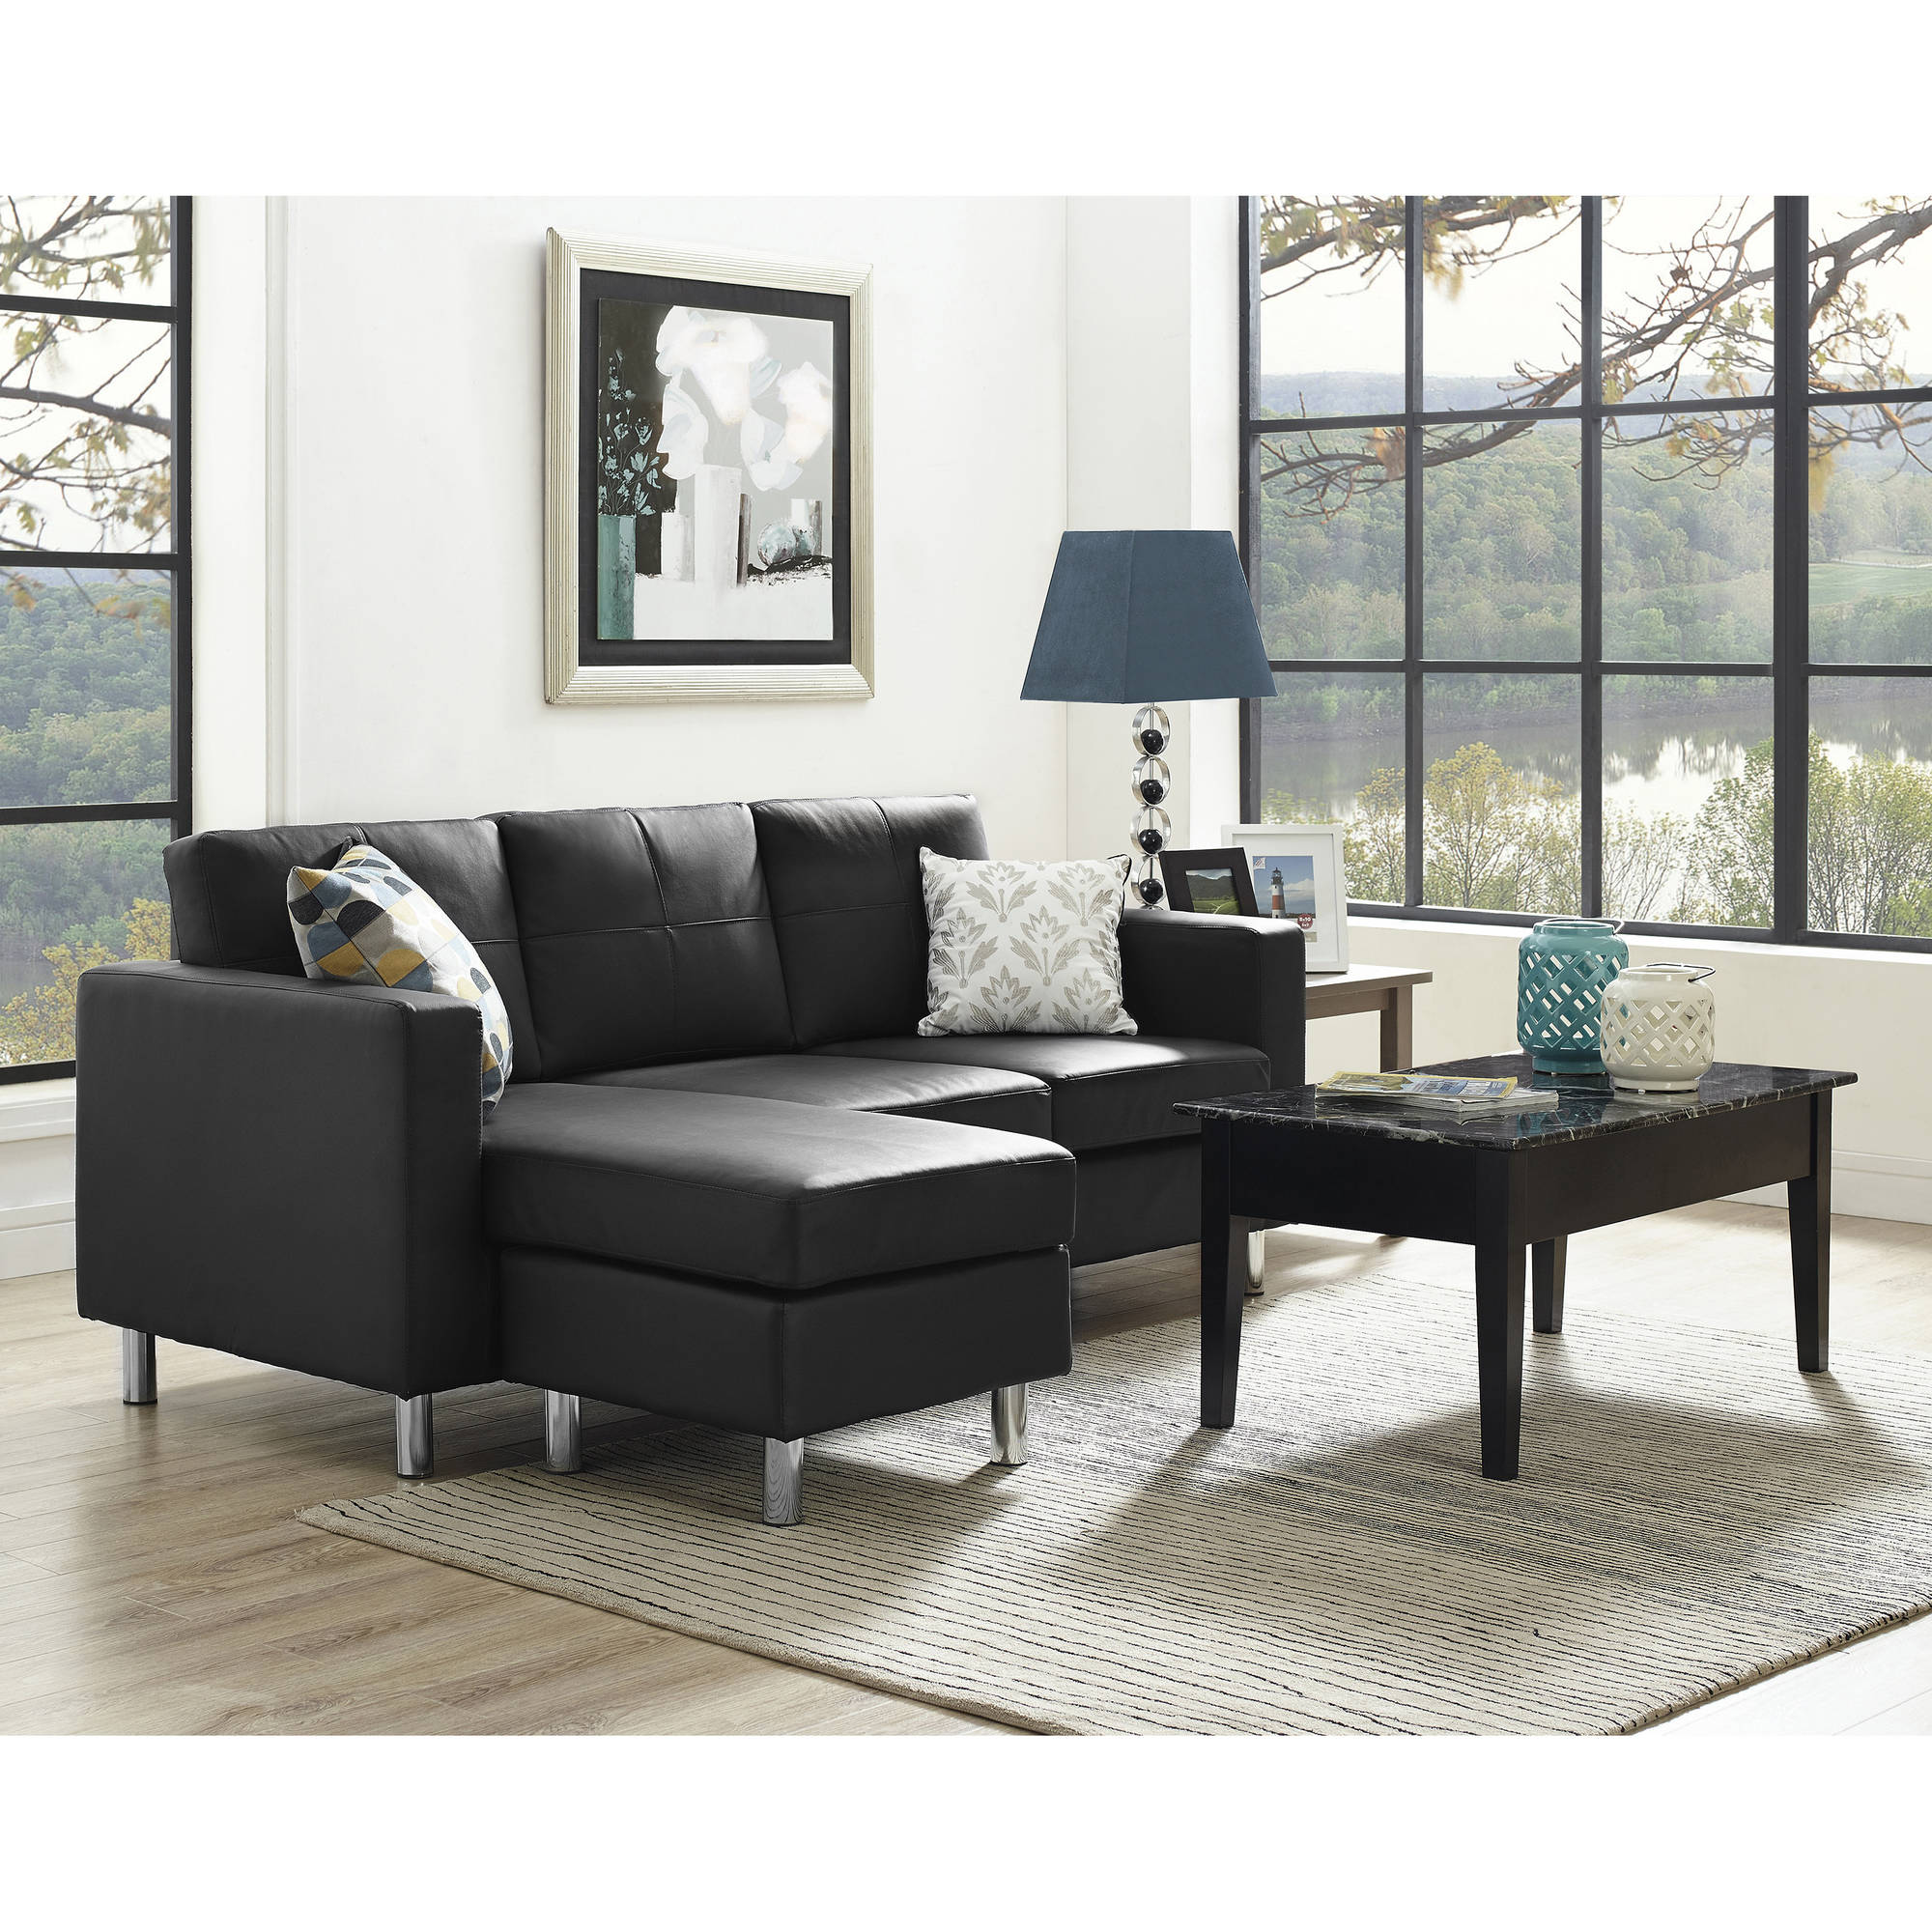 Small Sectional dorel living small spaces configurable sectional sofa, multiple